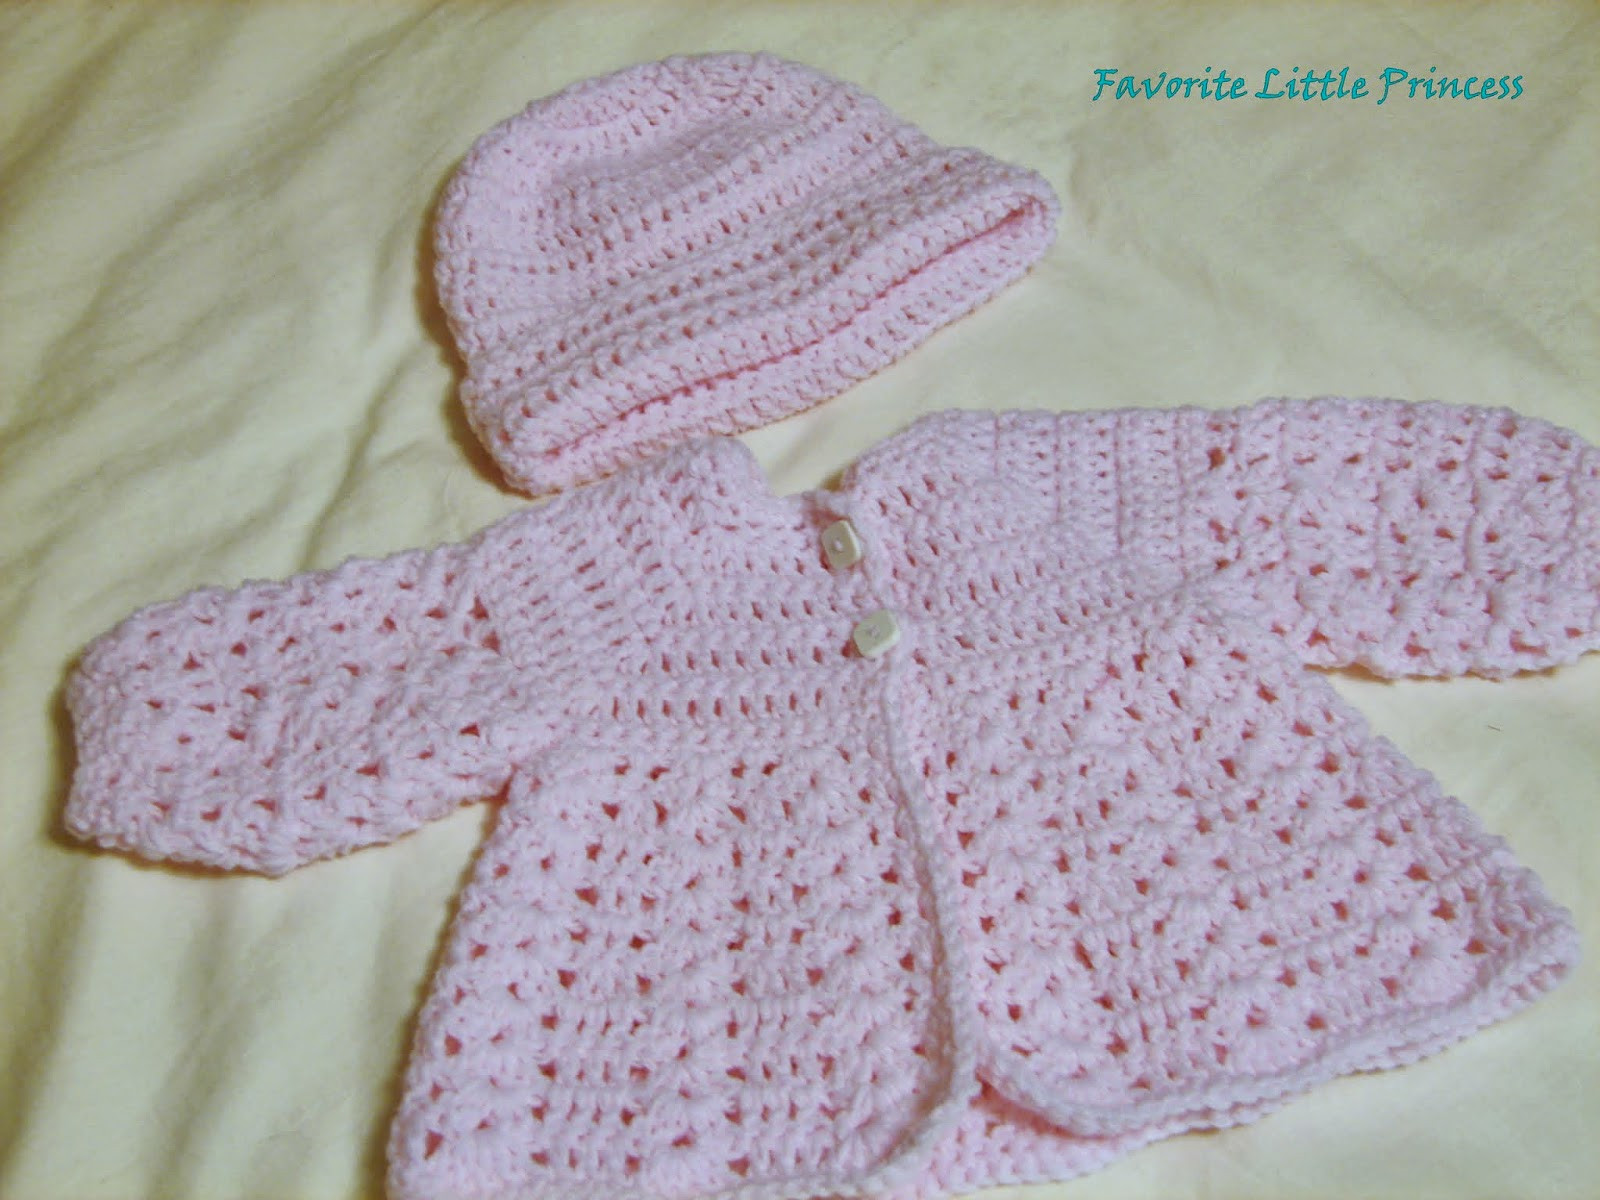 Easy Baby Sweater Crochet Pattern Lovely Favorite Little Princess Easy Baby Sweater and Hat Of Great 47 Photos Easy Baby Sweater Crochet Pattern